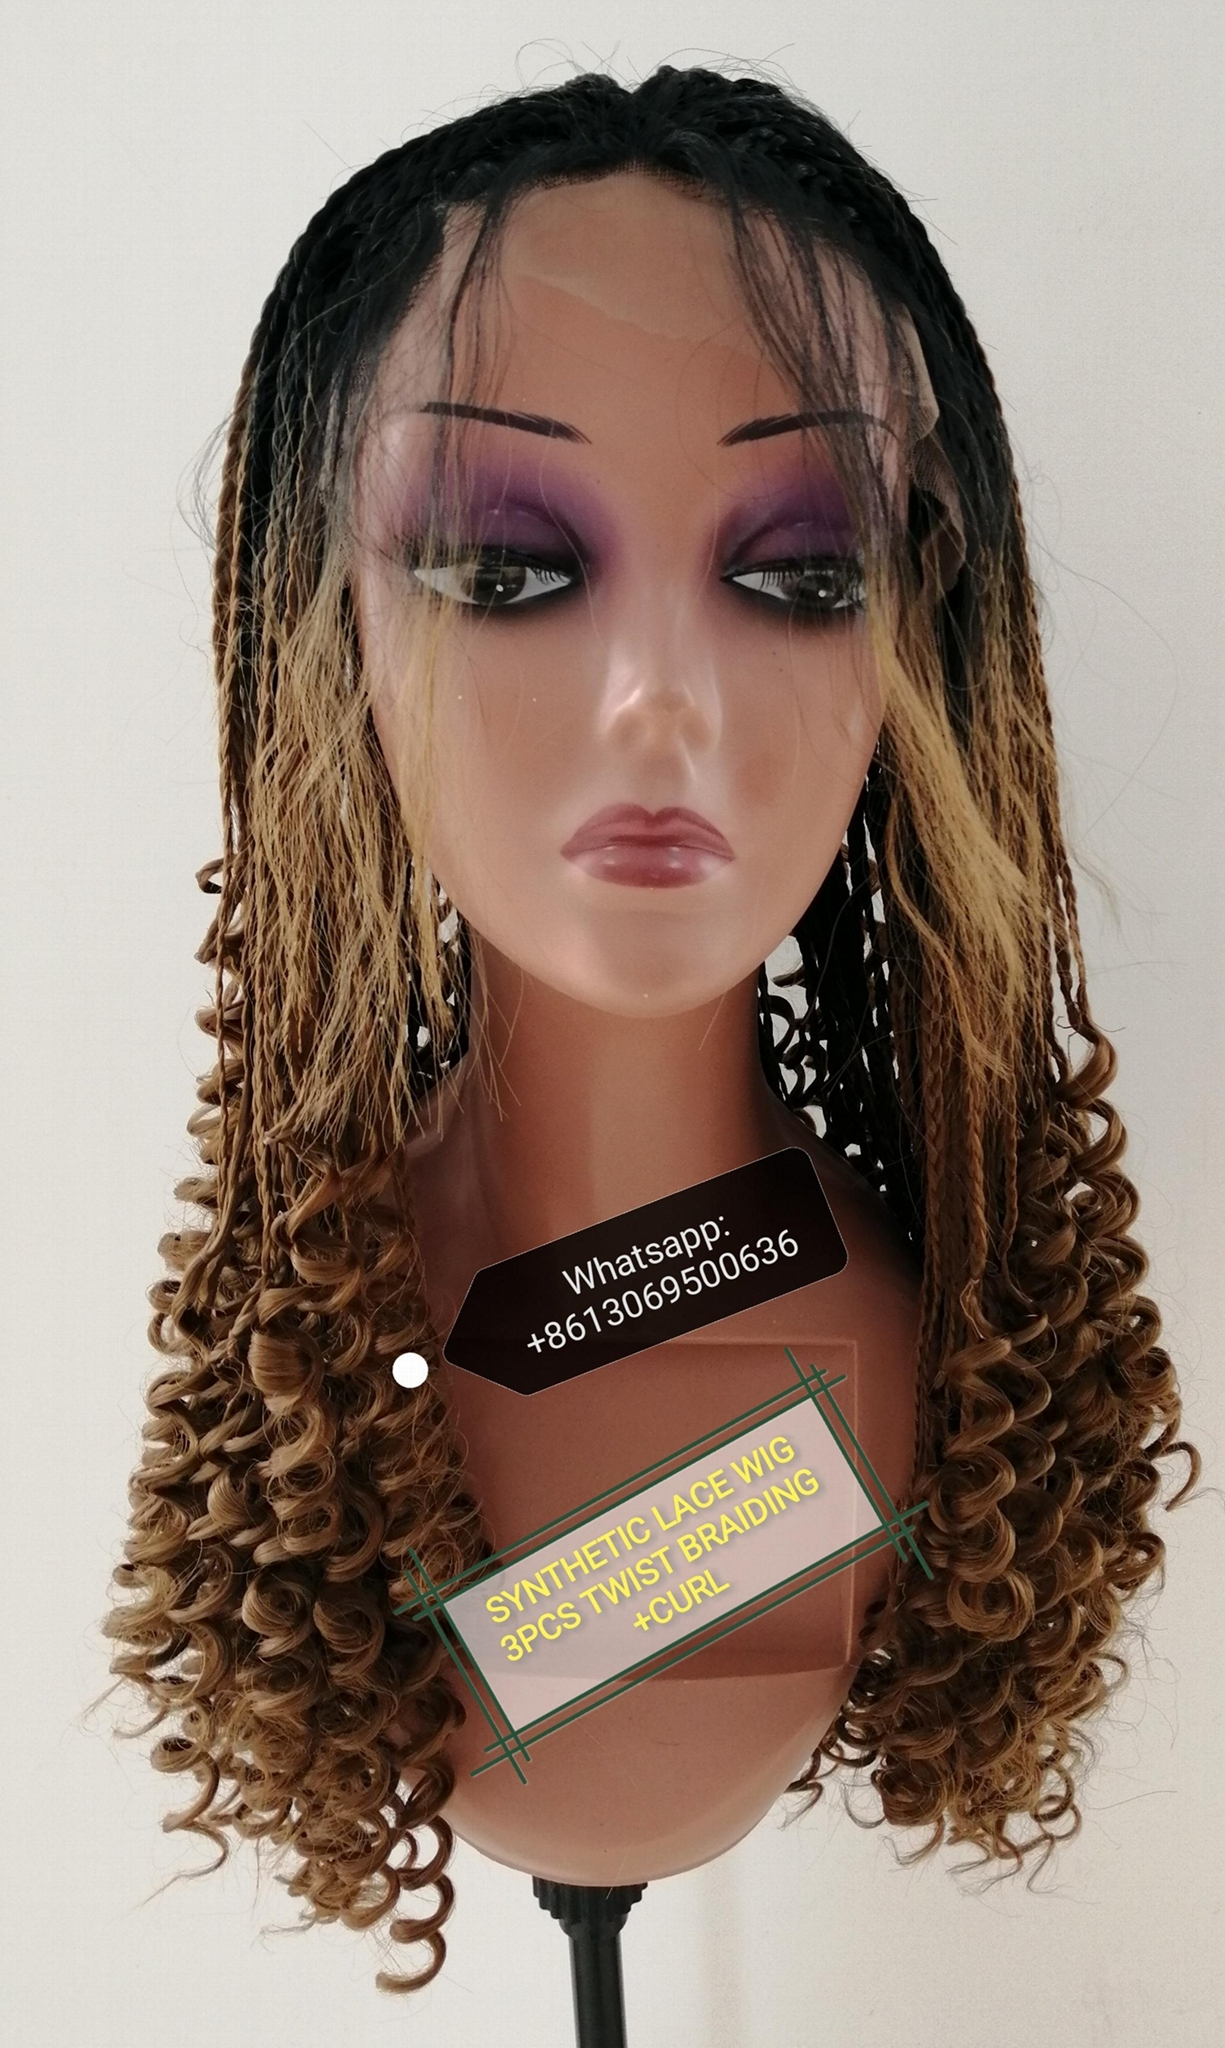 100%SYNTHETIC HAIR WIG 1